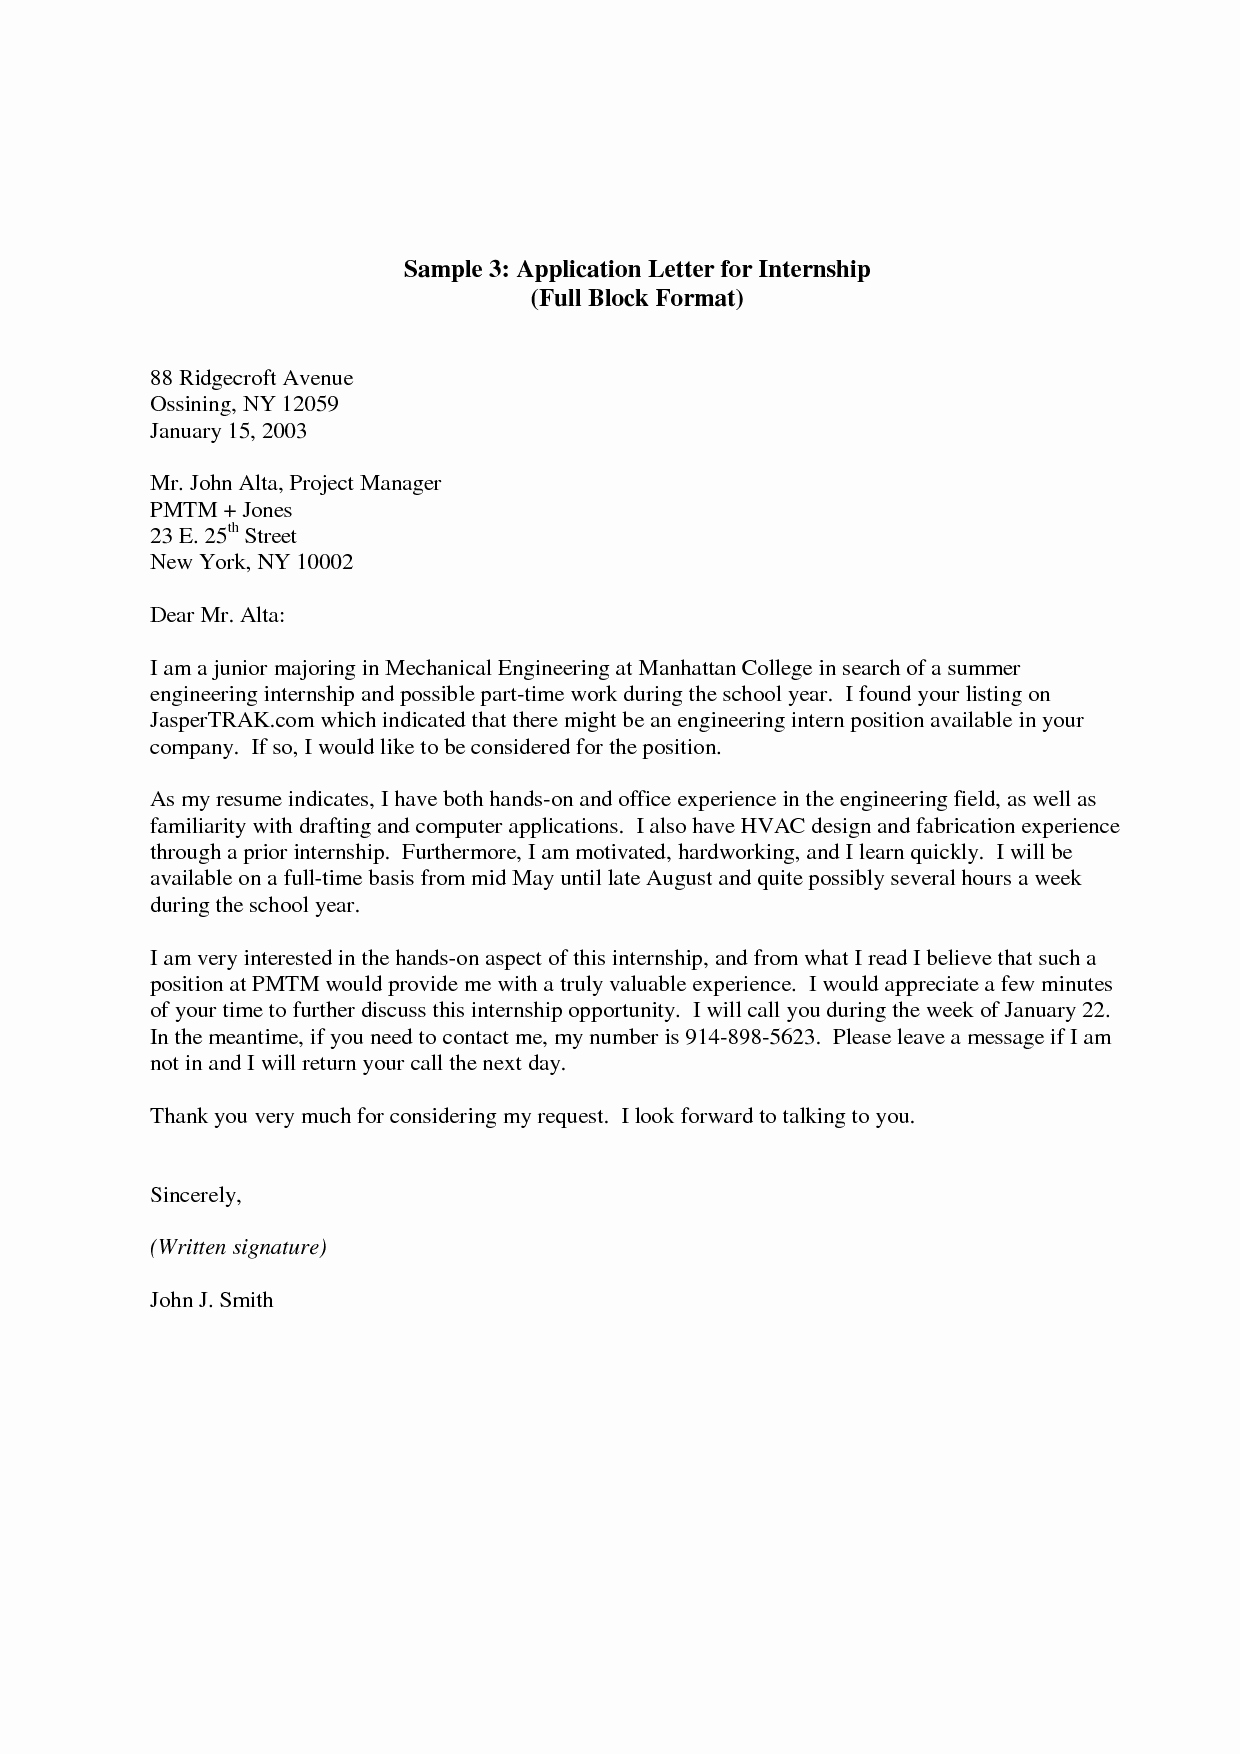 Cover Letter for Internship Examples Awesome Internship Application Letter Here is A Sample Cover